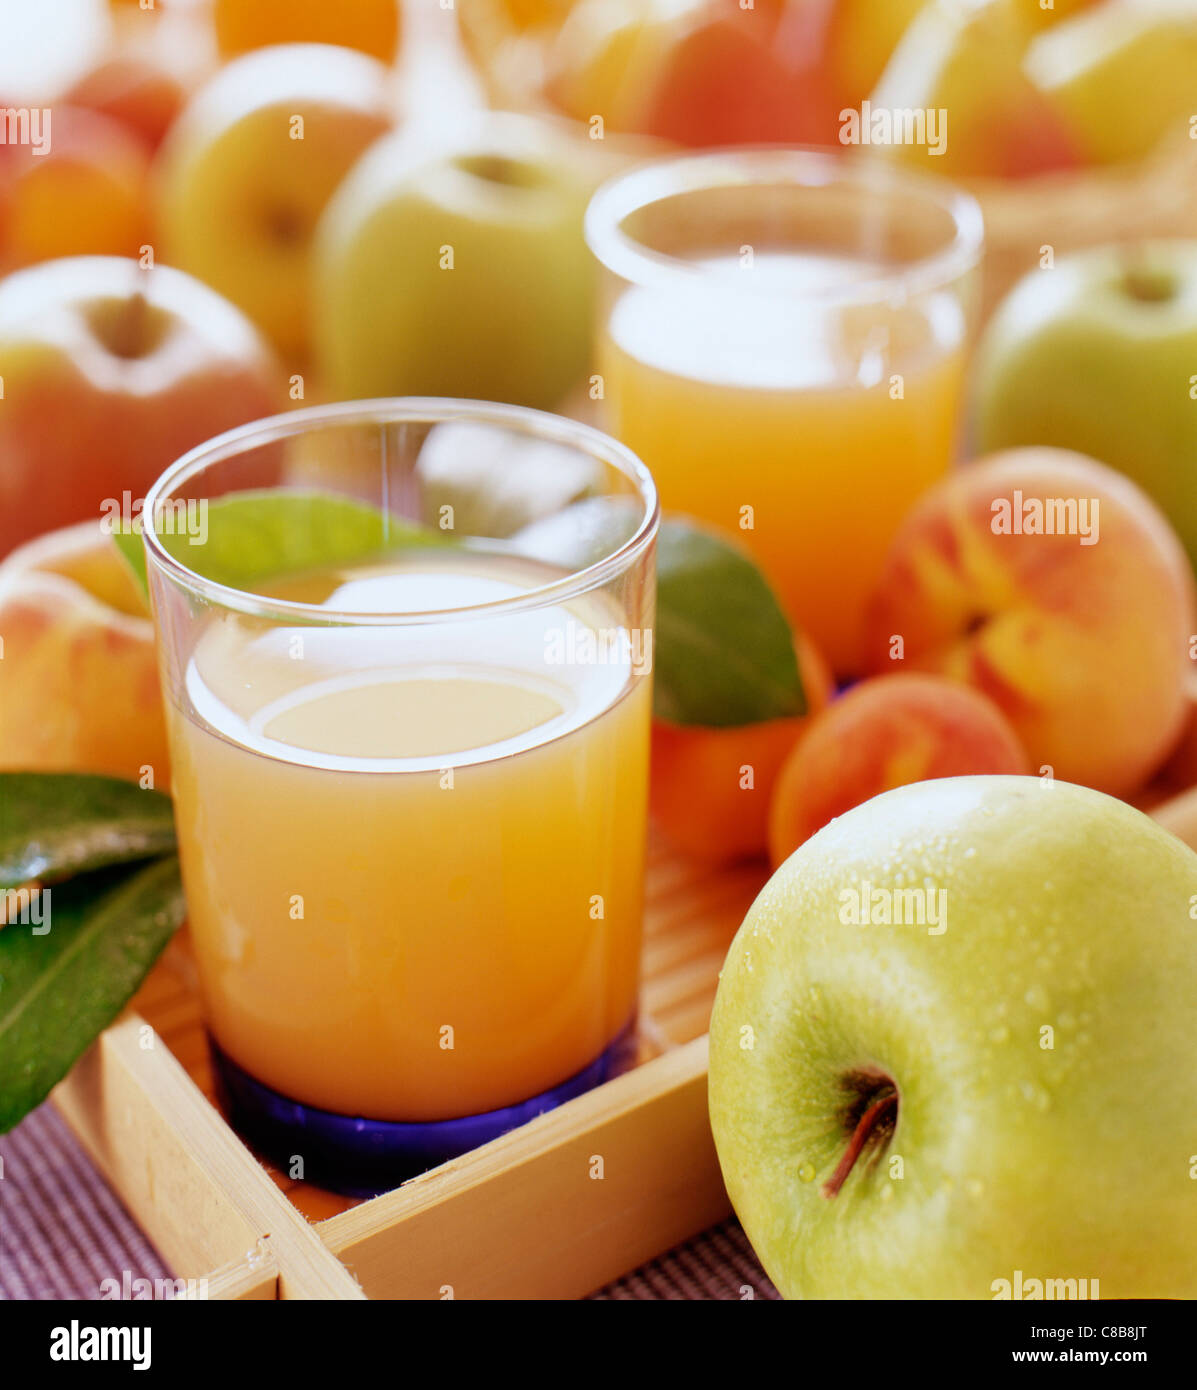 Fruit juices - Stock Image